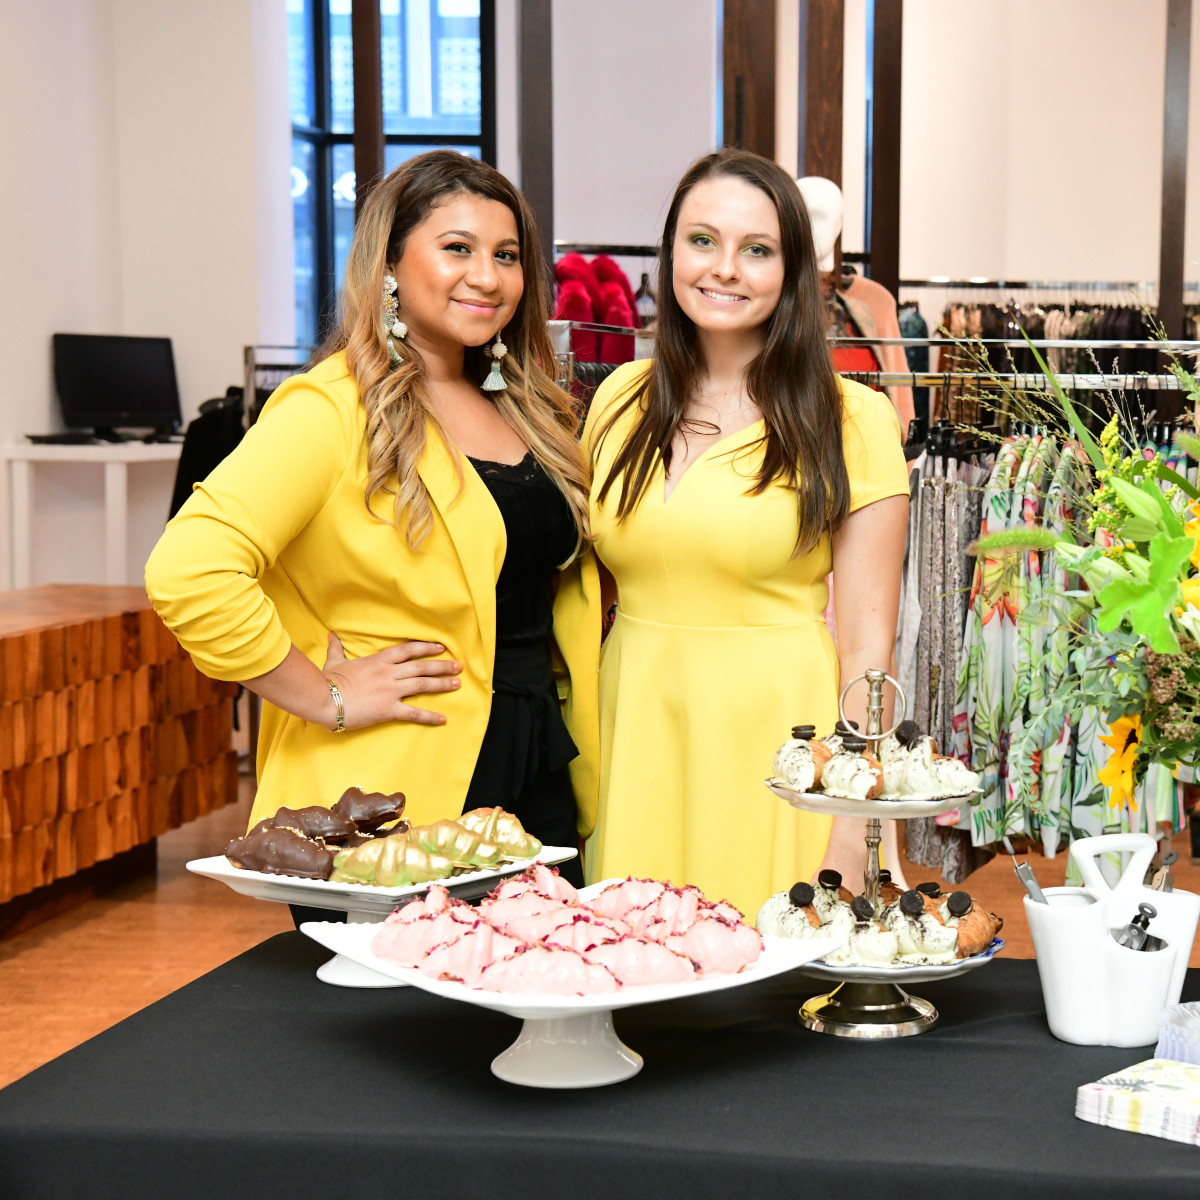 Summer Soiree Dress for Success WOW Tootsies Jeannette Gonzalez (EggHaus Gourmet owner), Maddison Smith